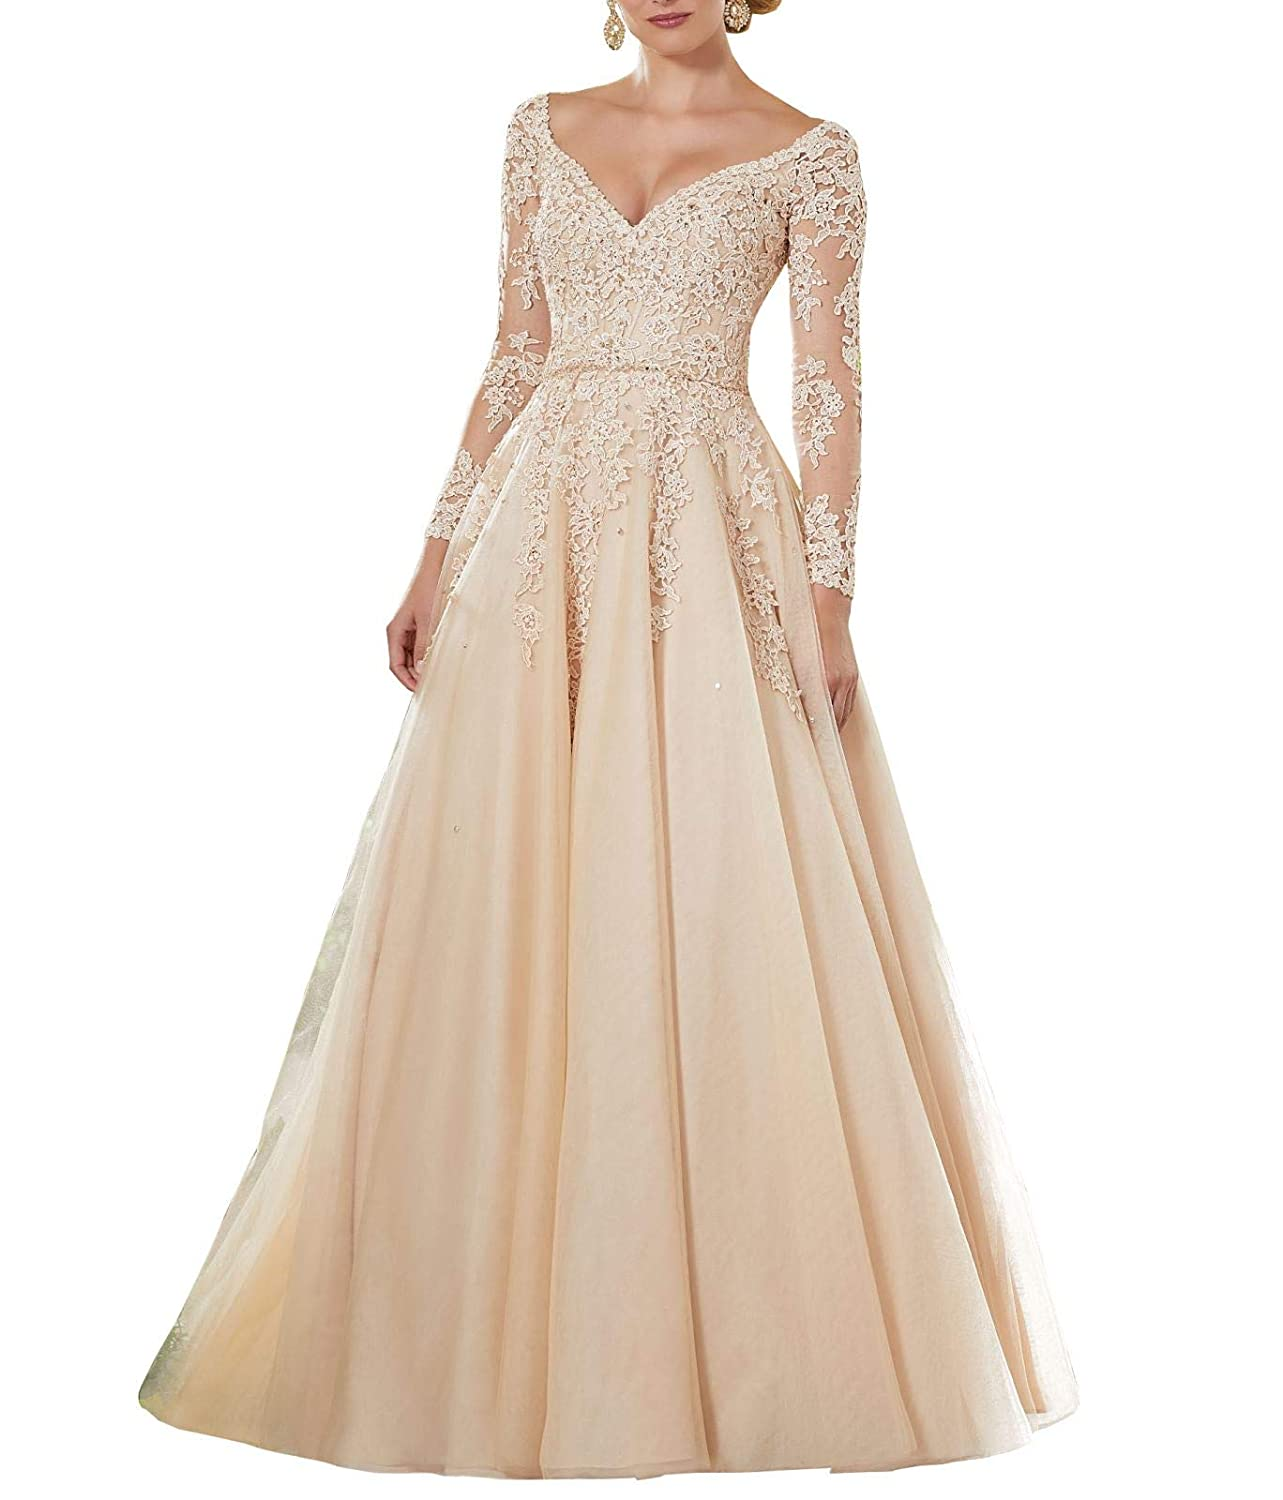 Champagne Wanshaqin Women's Lace Appliqued VNeck Formal Evening Gown Sleeves Tulle Party Dress with Empire Jewelled Waist